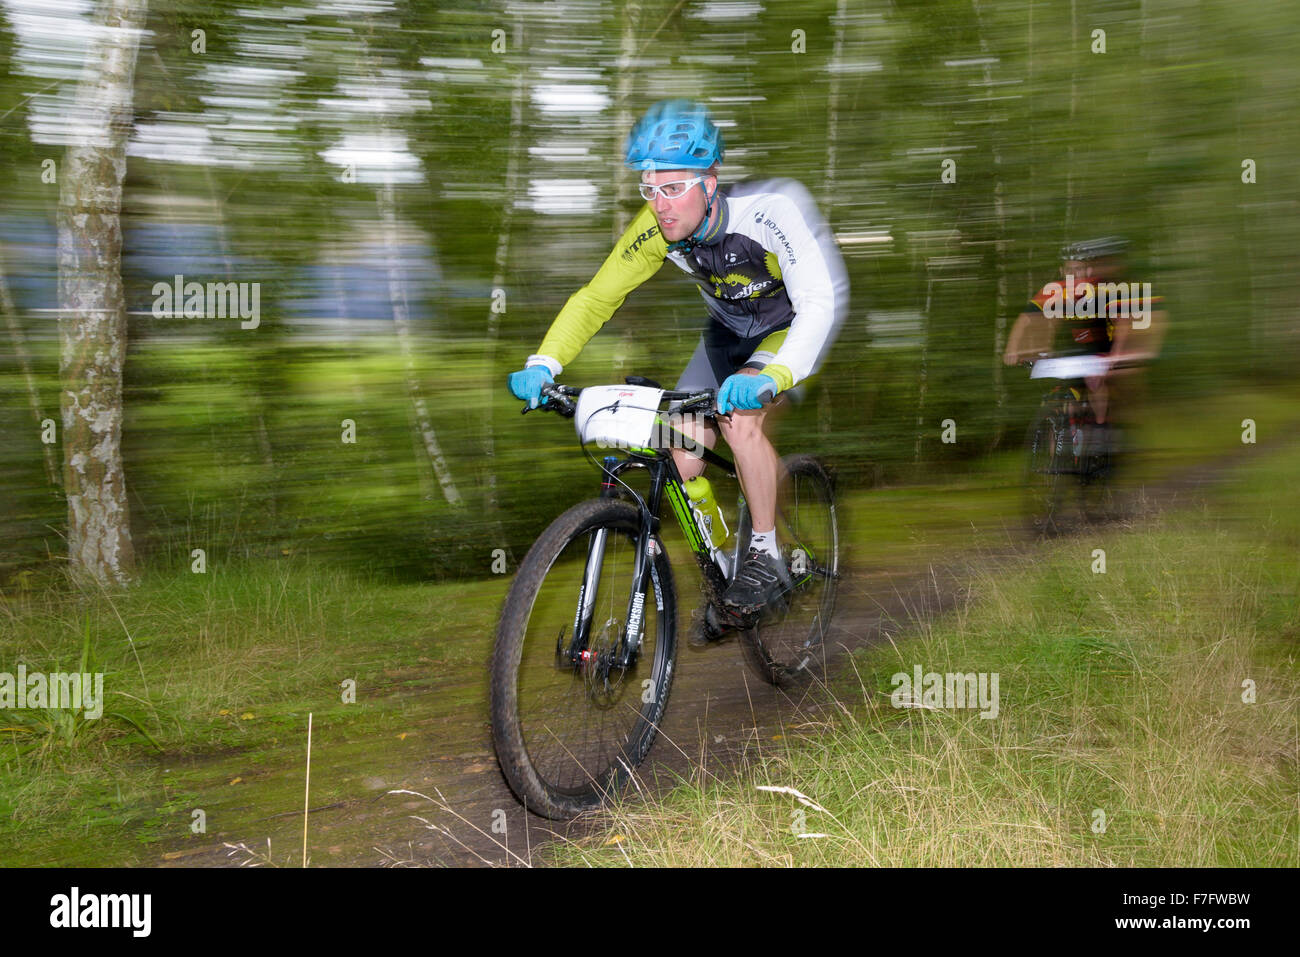 Two mountain bikers ride through a forest at a mountain biking competition - Stock Image